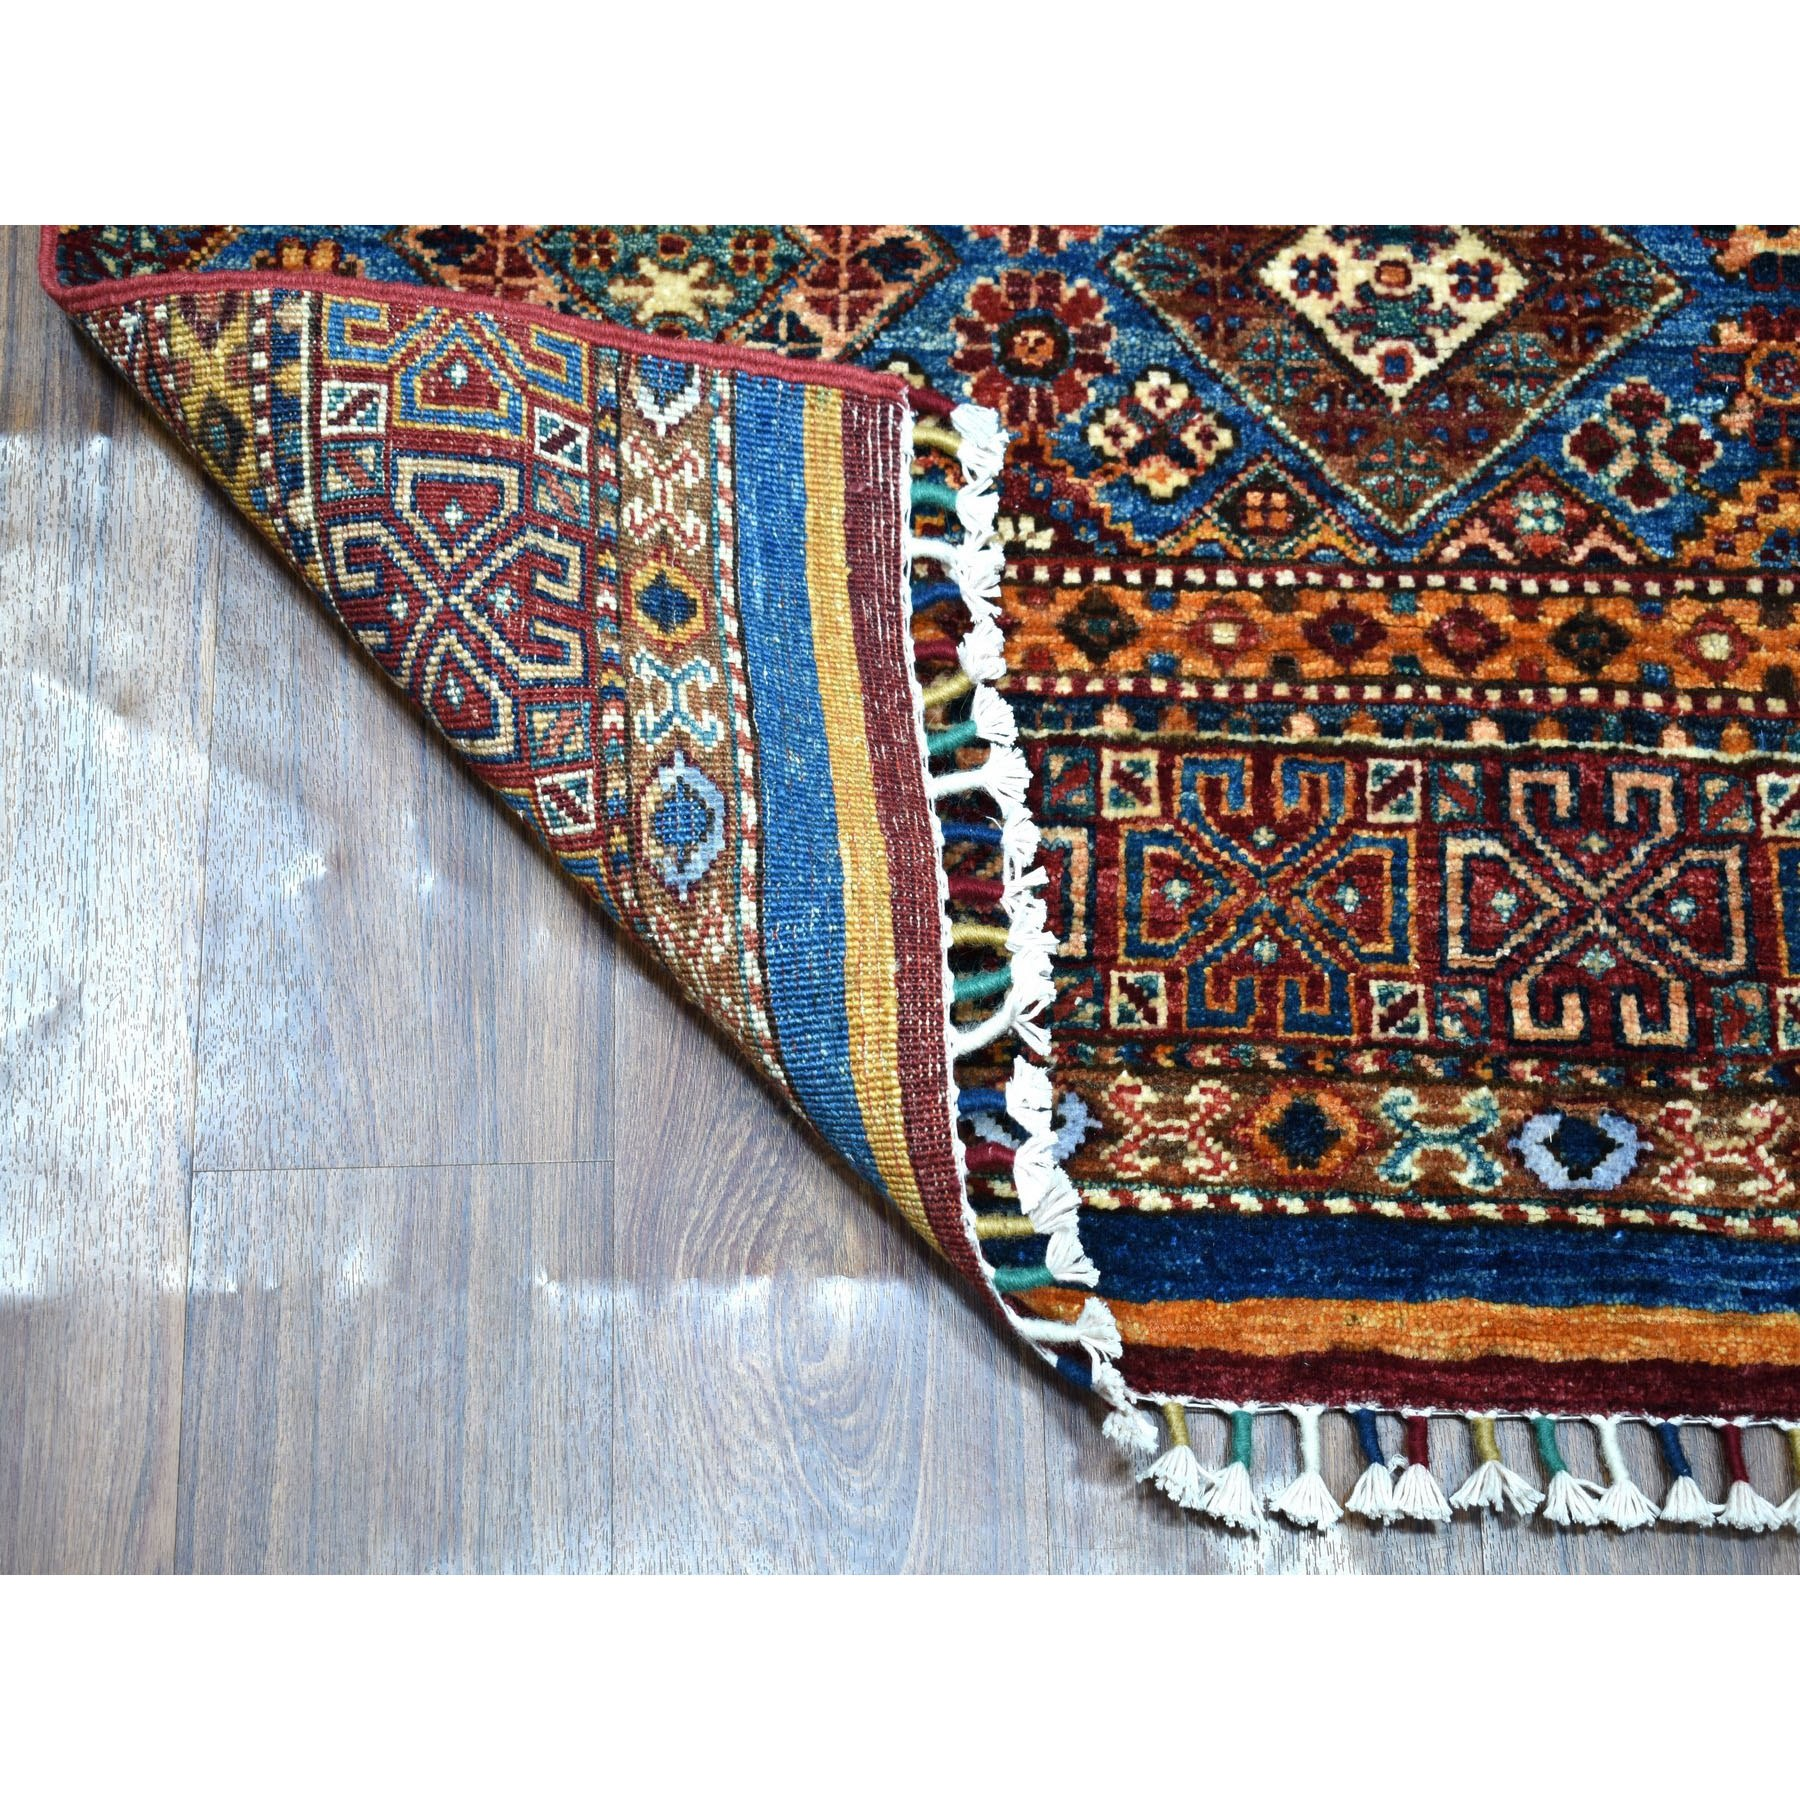 2-8 x8-10  Khorjin Design Colorful Runner Super Kazak Pure Wool Hand Knotted Oriental Rug